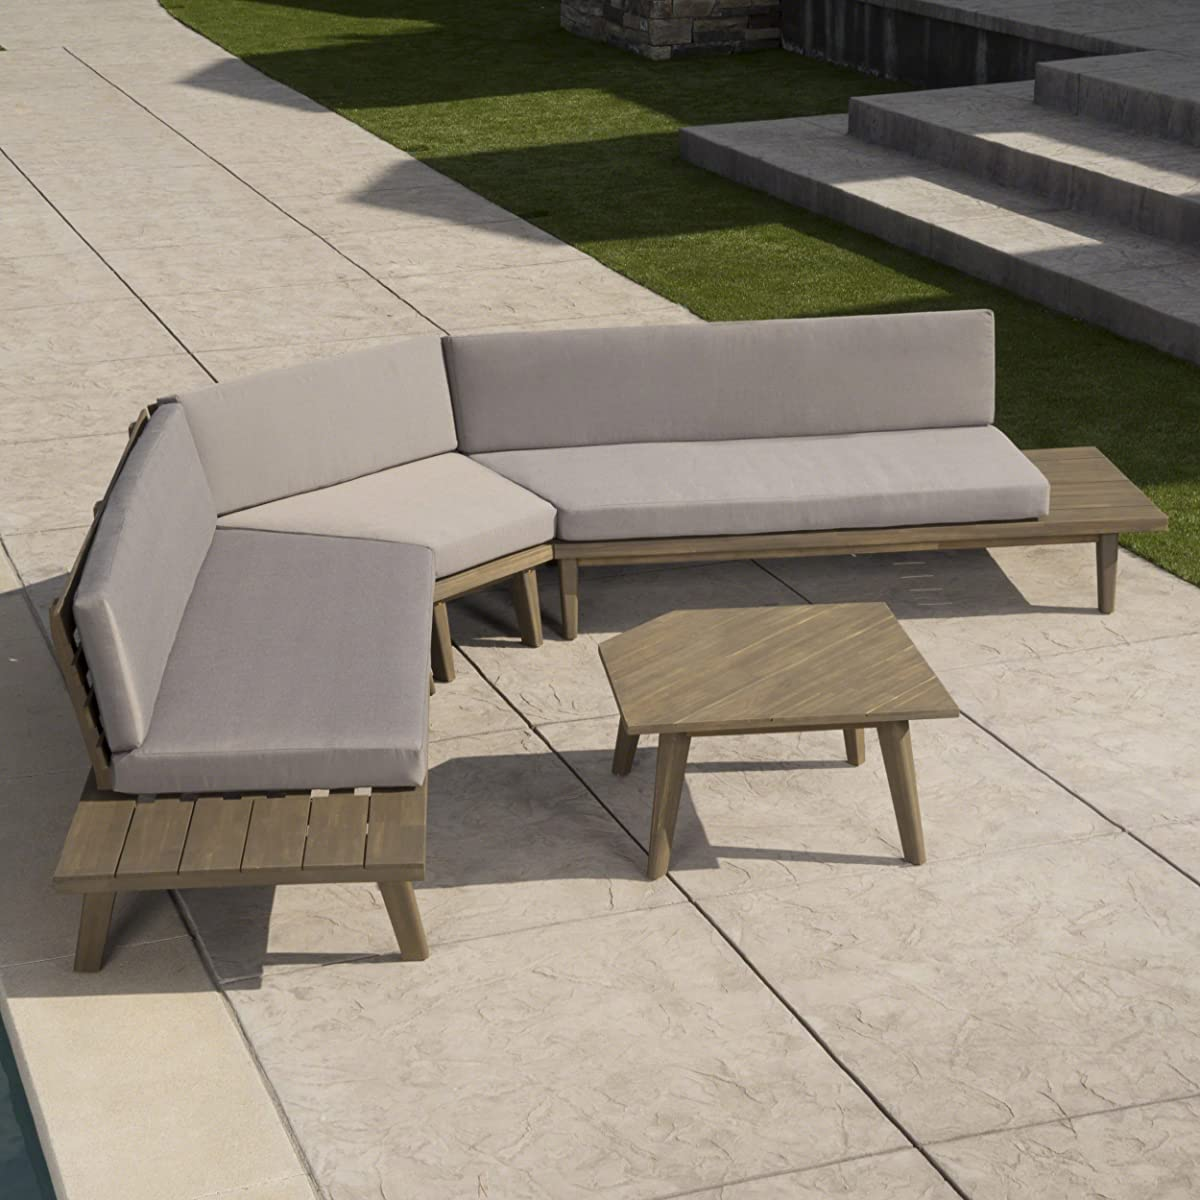 Great Deal Furniture Hillside Outdoor V Shaped 4 Piece Grey Finished Acacia Wood Sectional Sofa Set with Grey Water Resistant Cushions